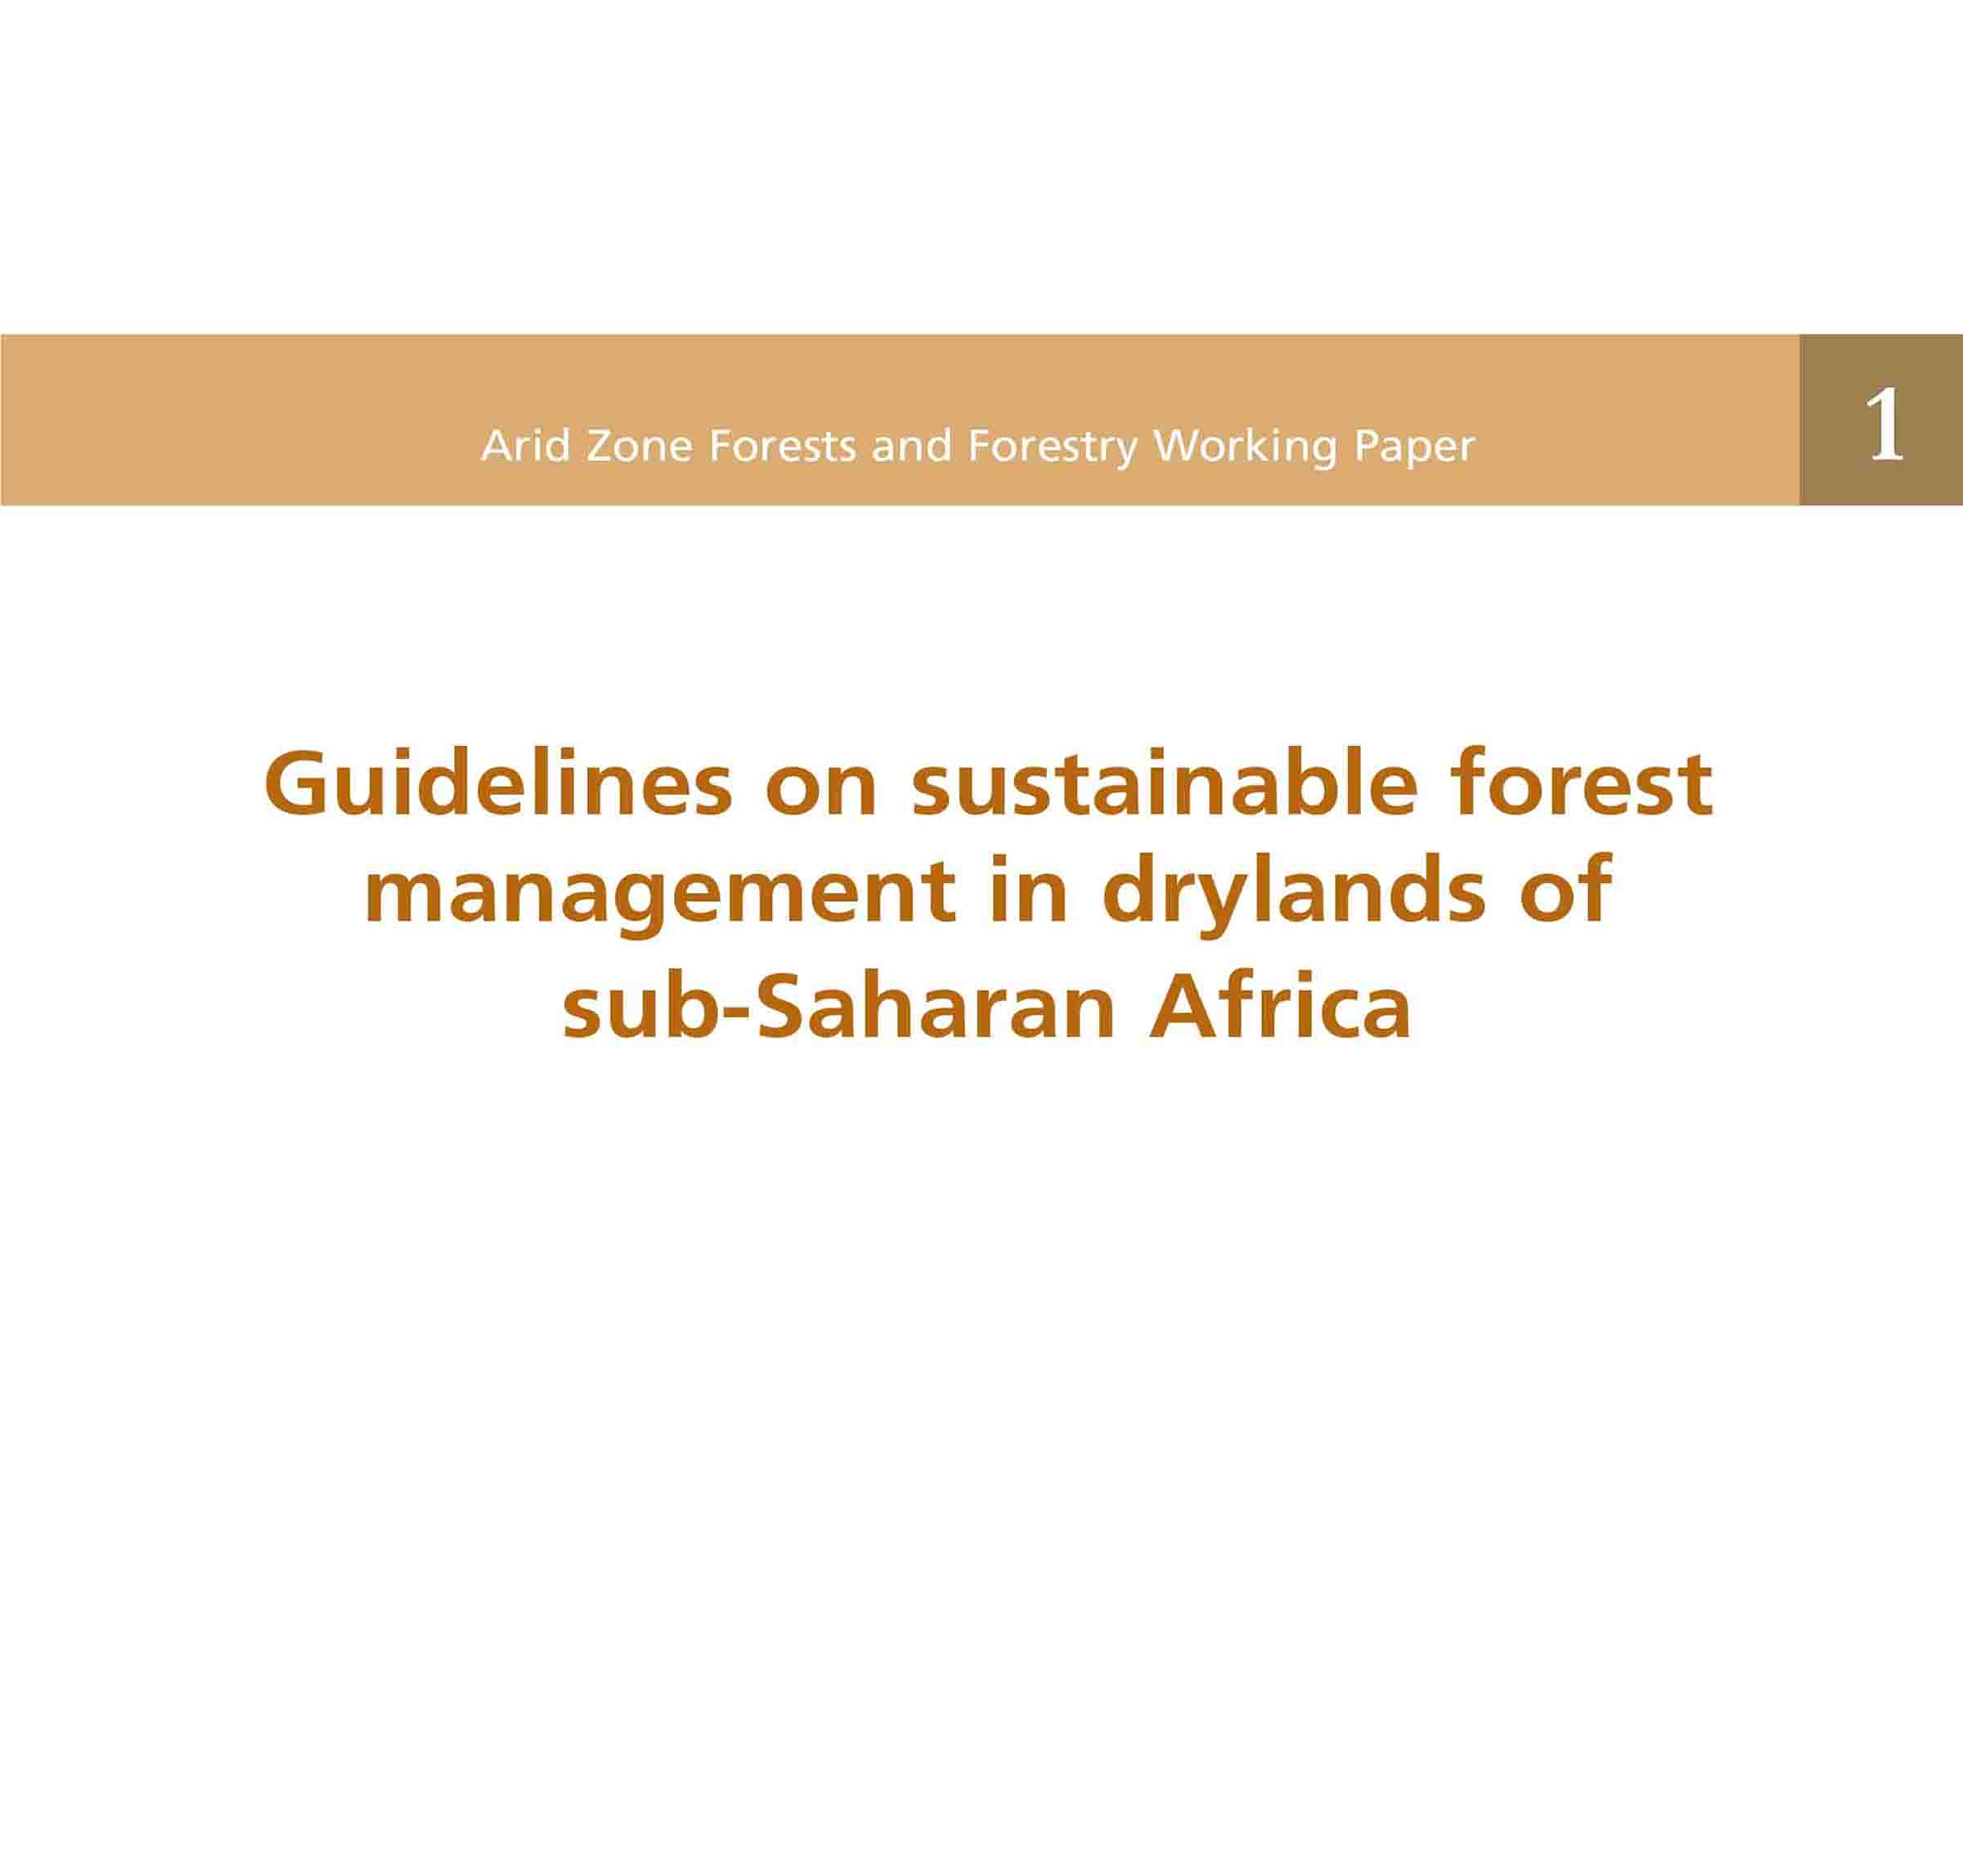 Guidelines on sustainable forest management FAO Publication